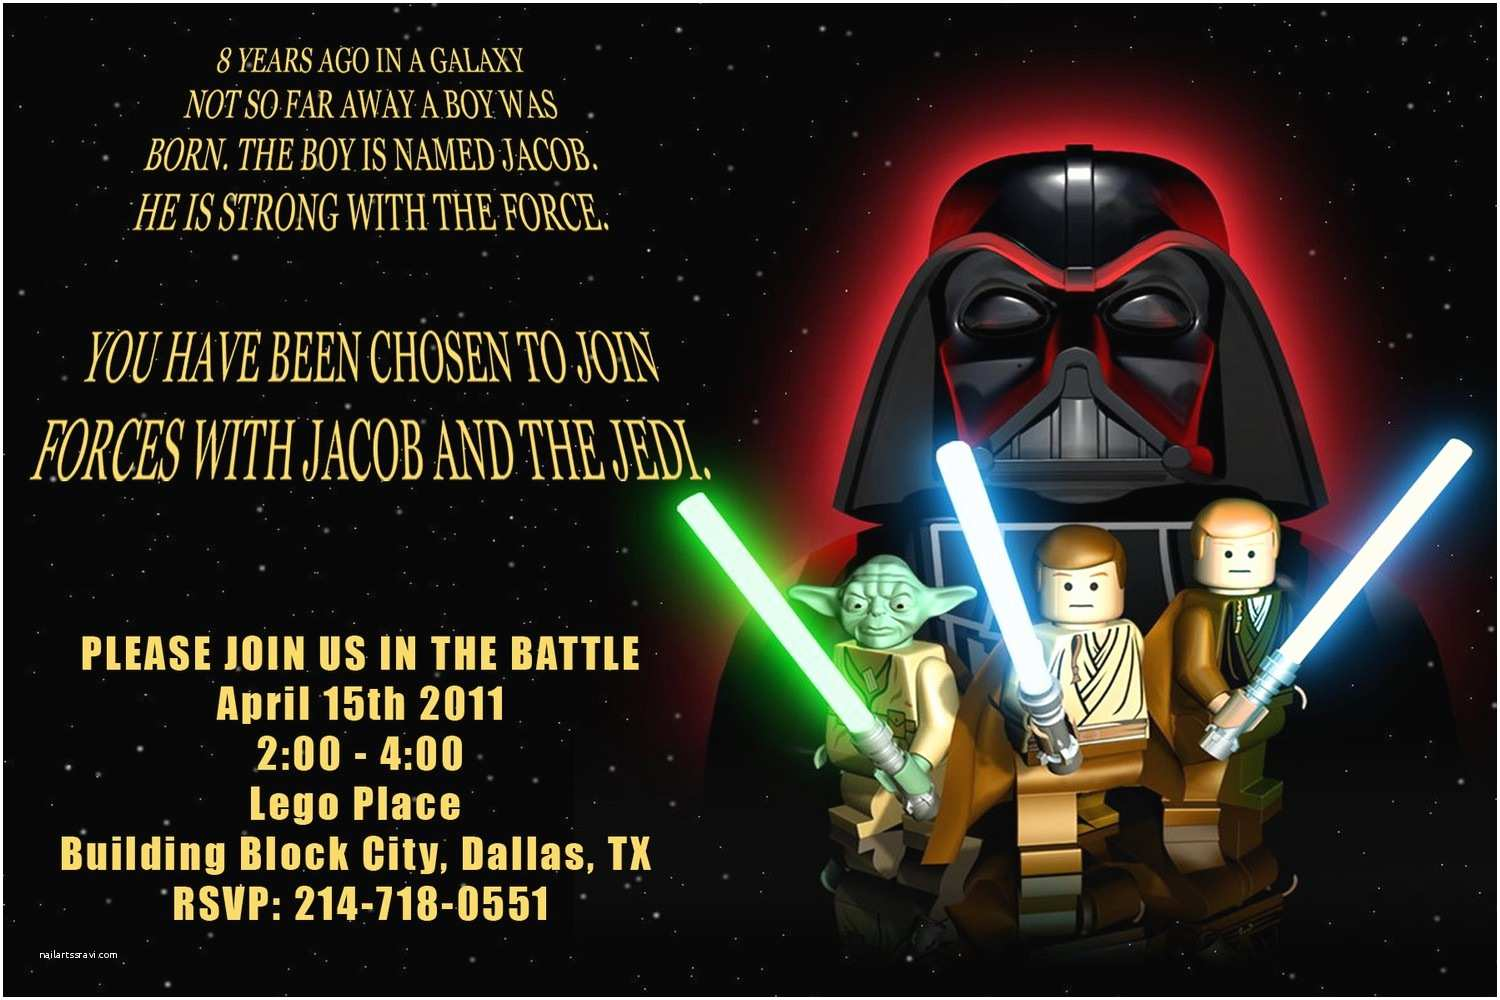 Star Wars Birthday Party Invitations Birthday Invites Anime and Lego Star Wars Party